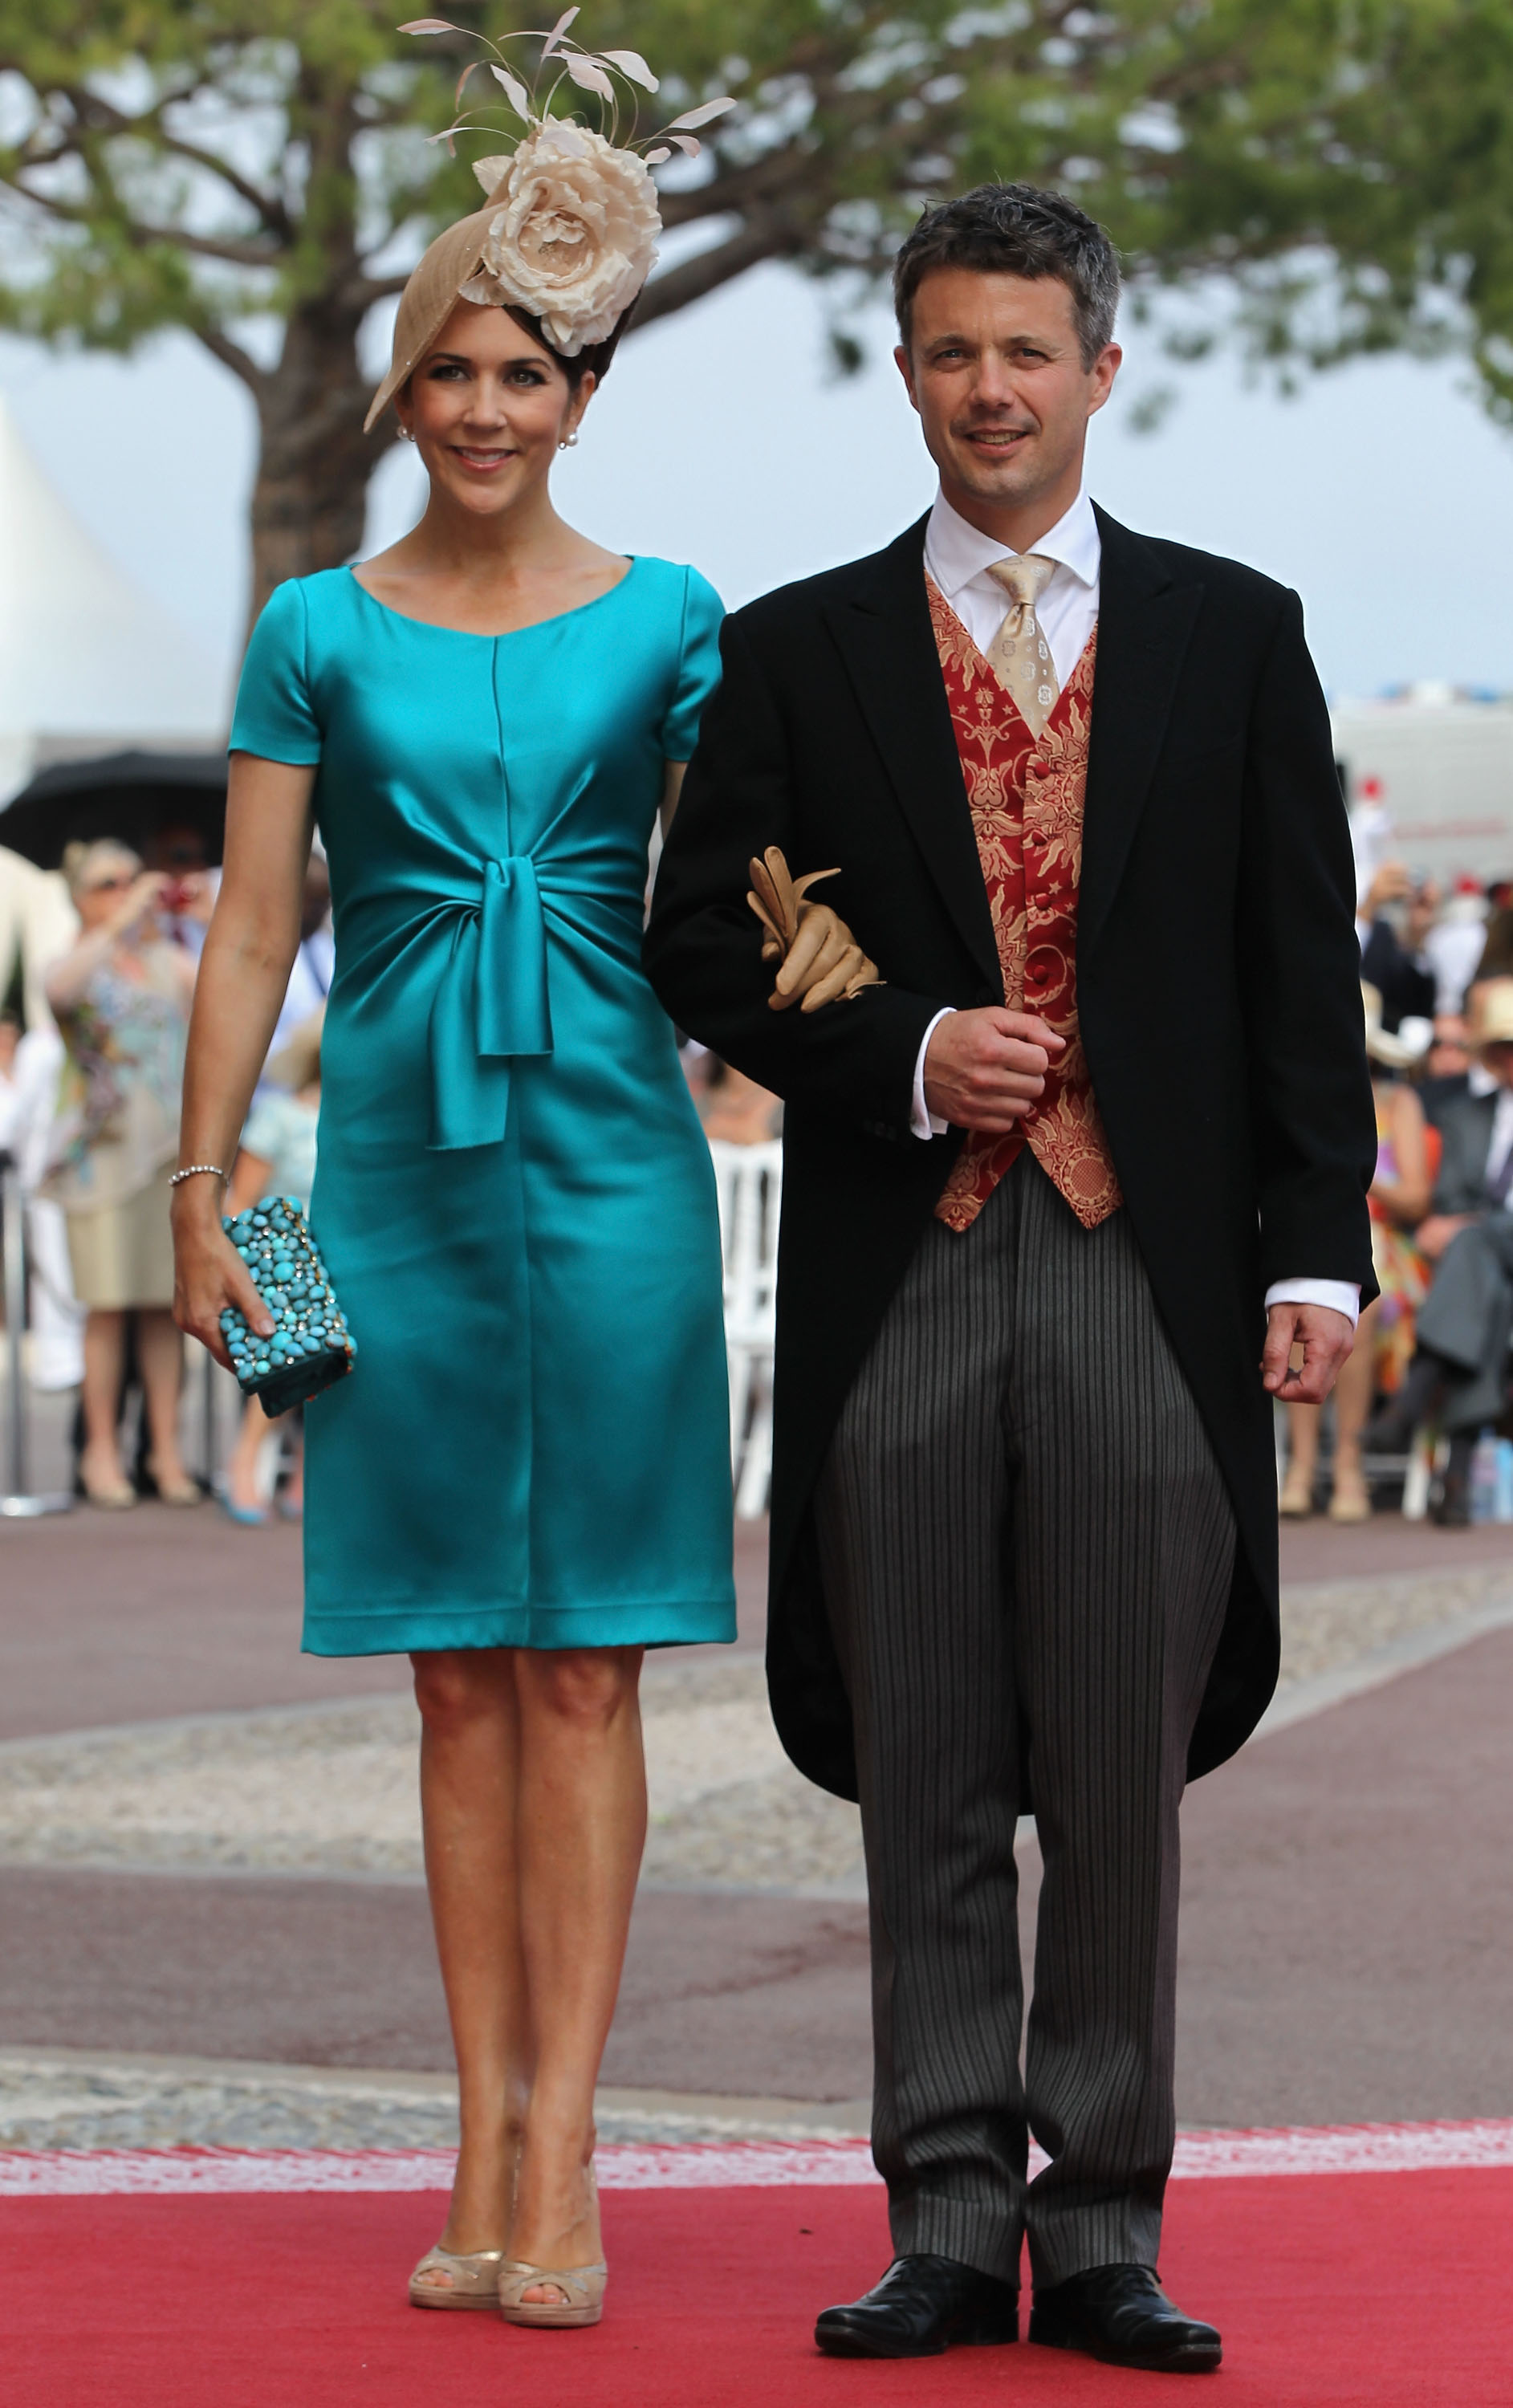 Best outfit worn at a Royal wedding by a guest - Page 6 - The Royal ...